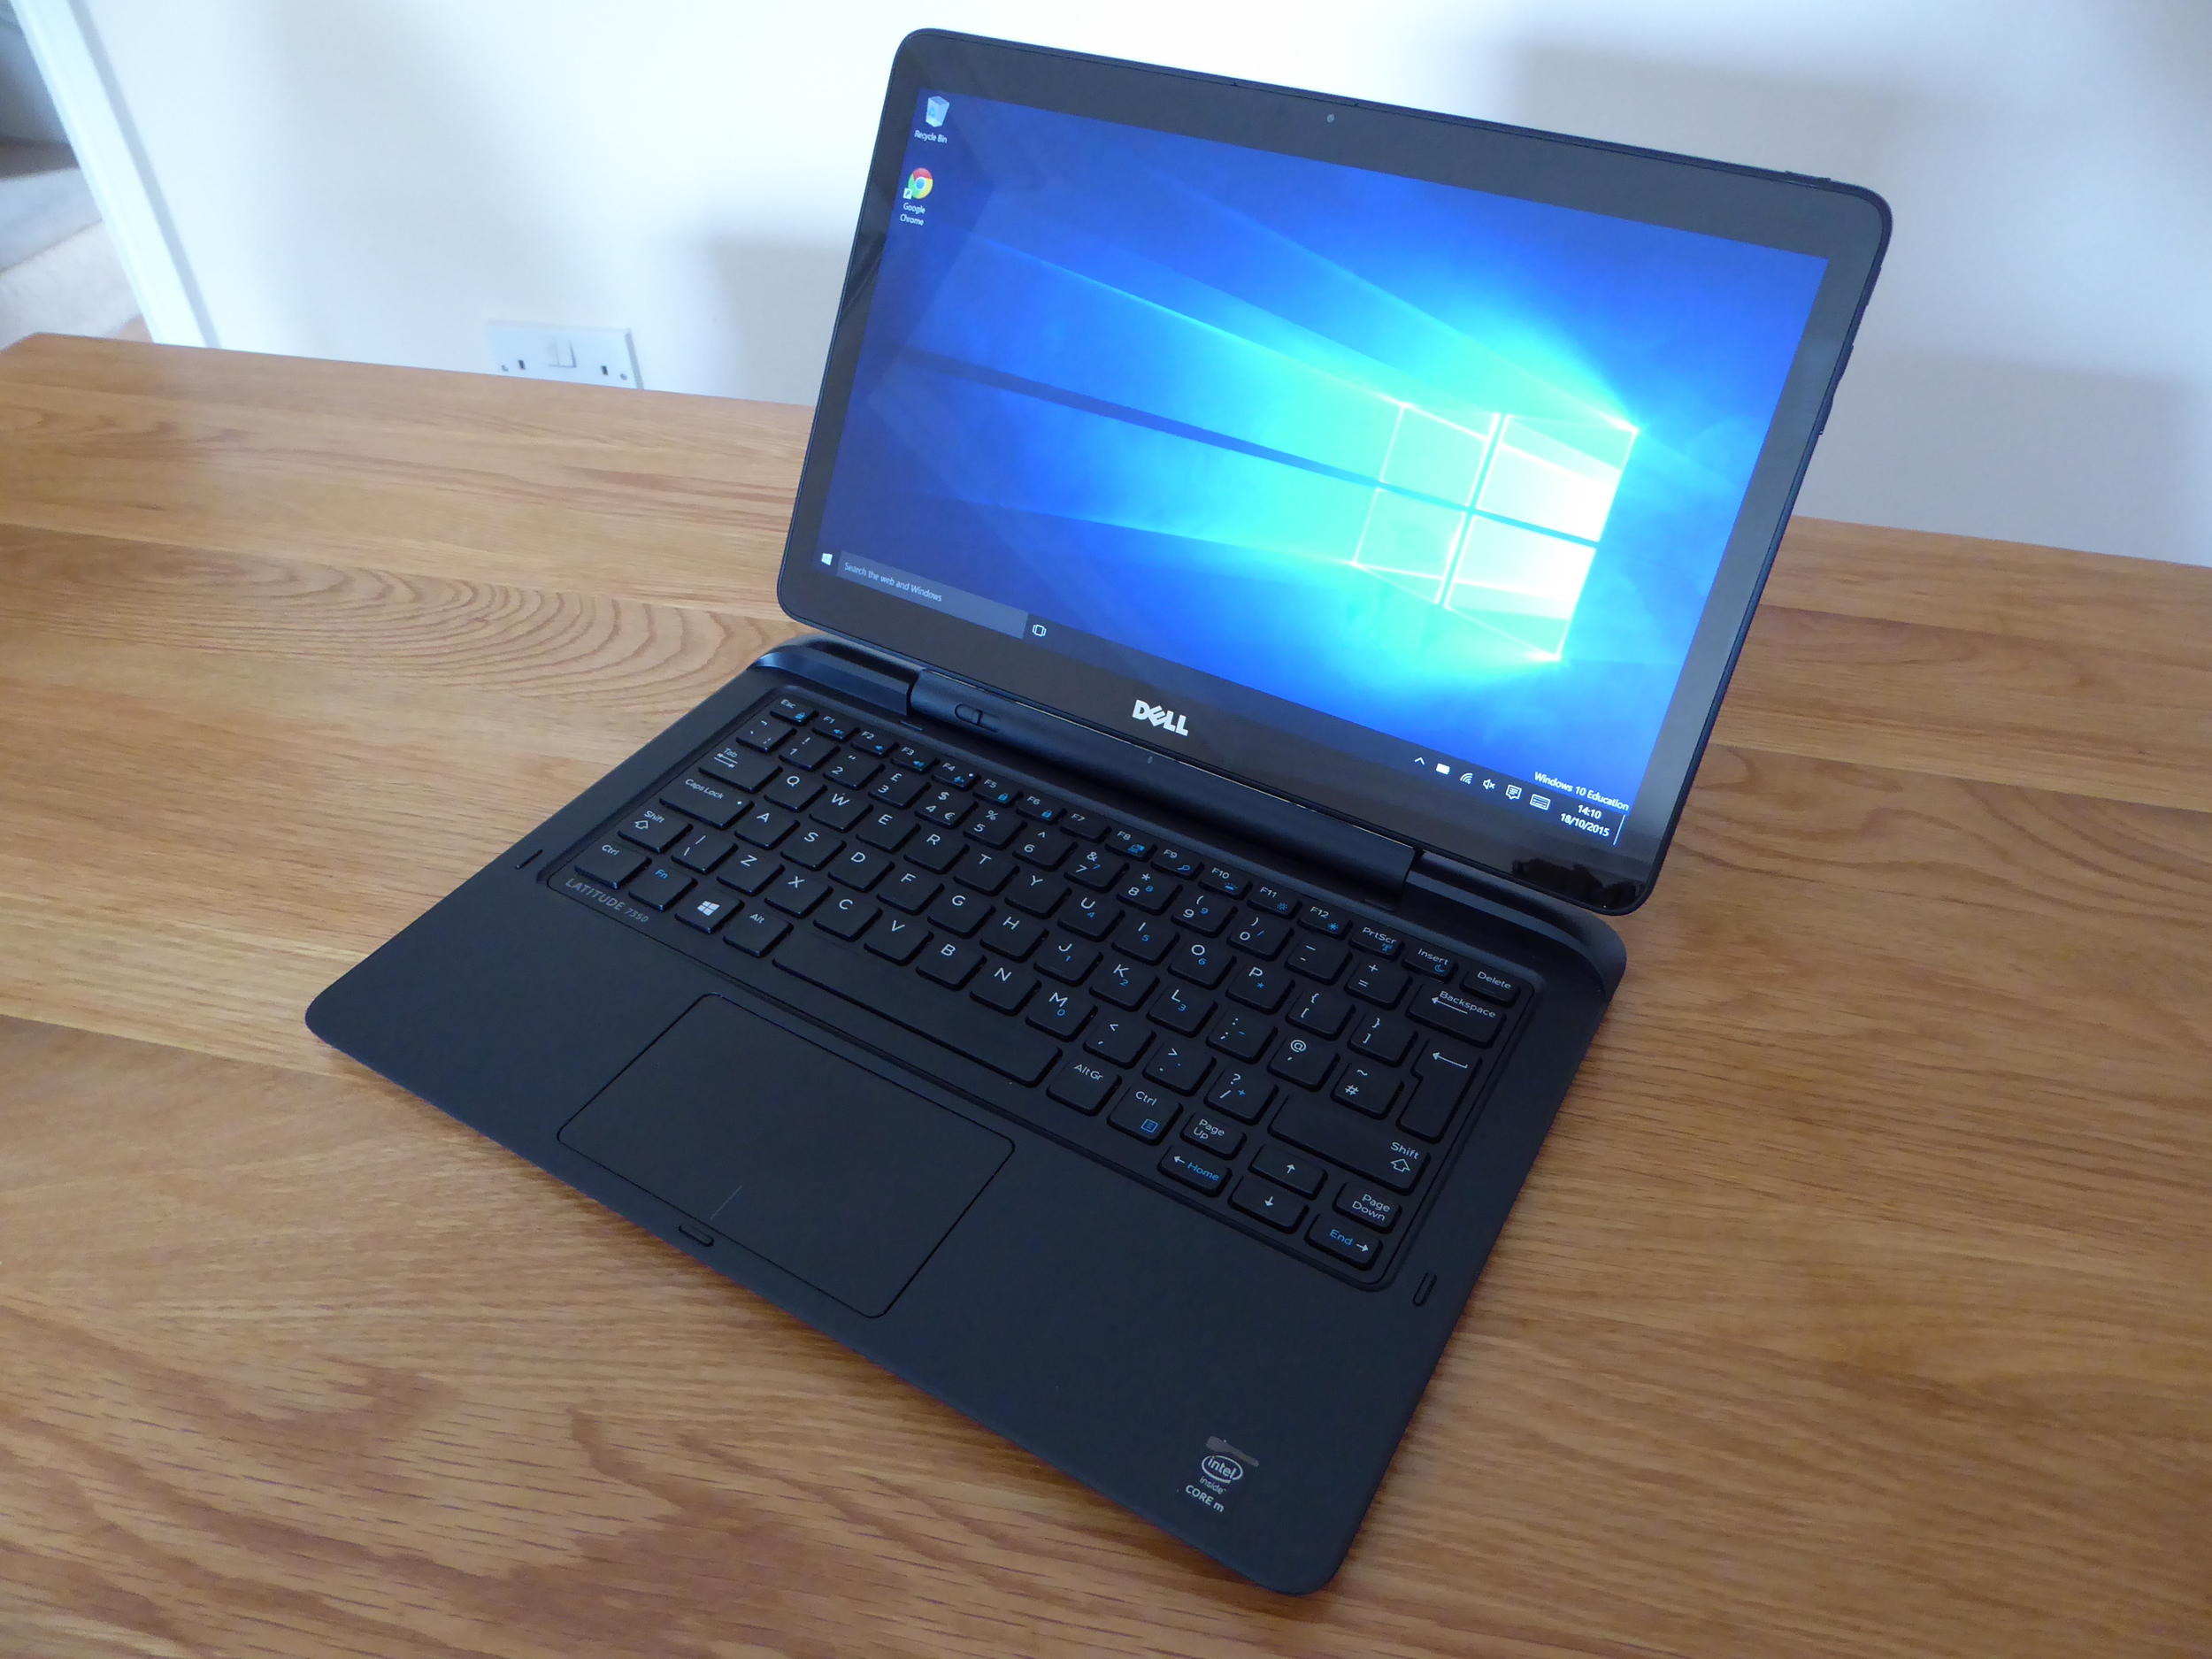 Dell's 2-in-1 costs as much as a Surface Pro or iPad Pro but comes with less shiny